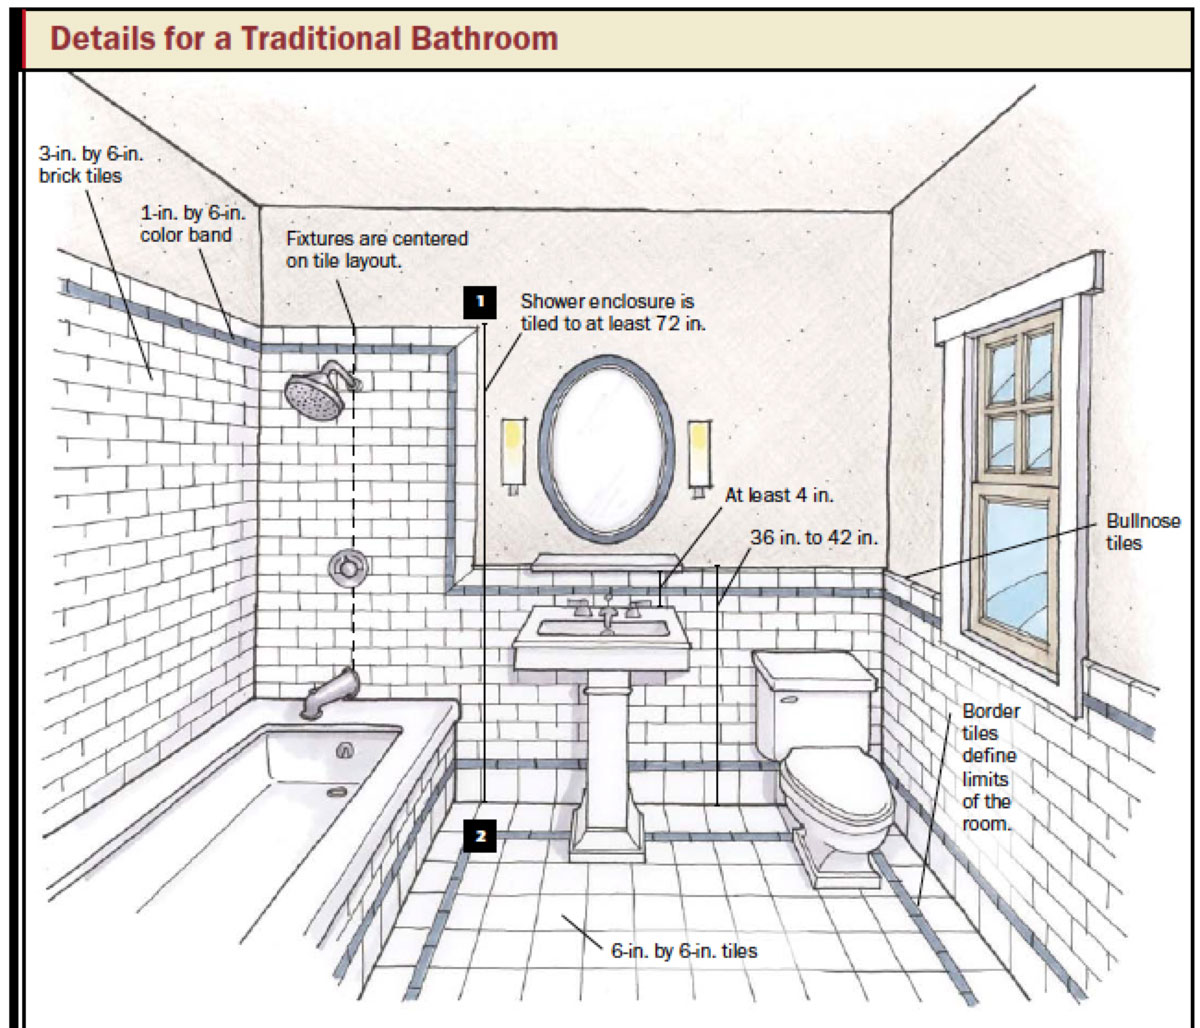 Bathroom design planning tips taymor for Bathroom design planner